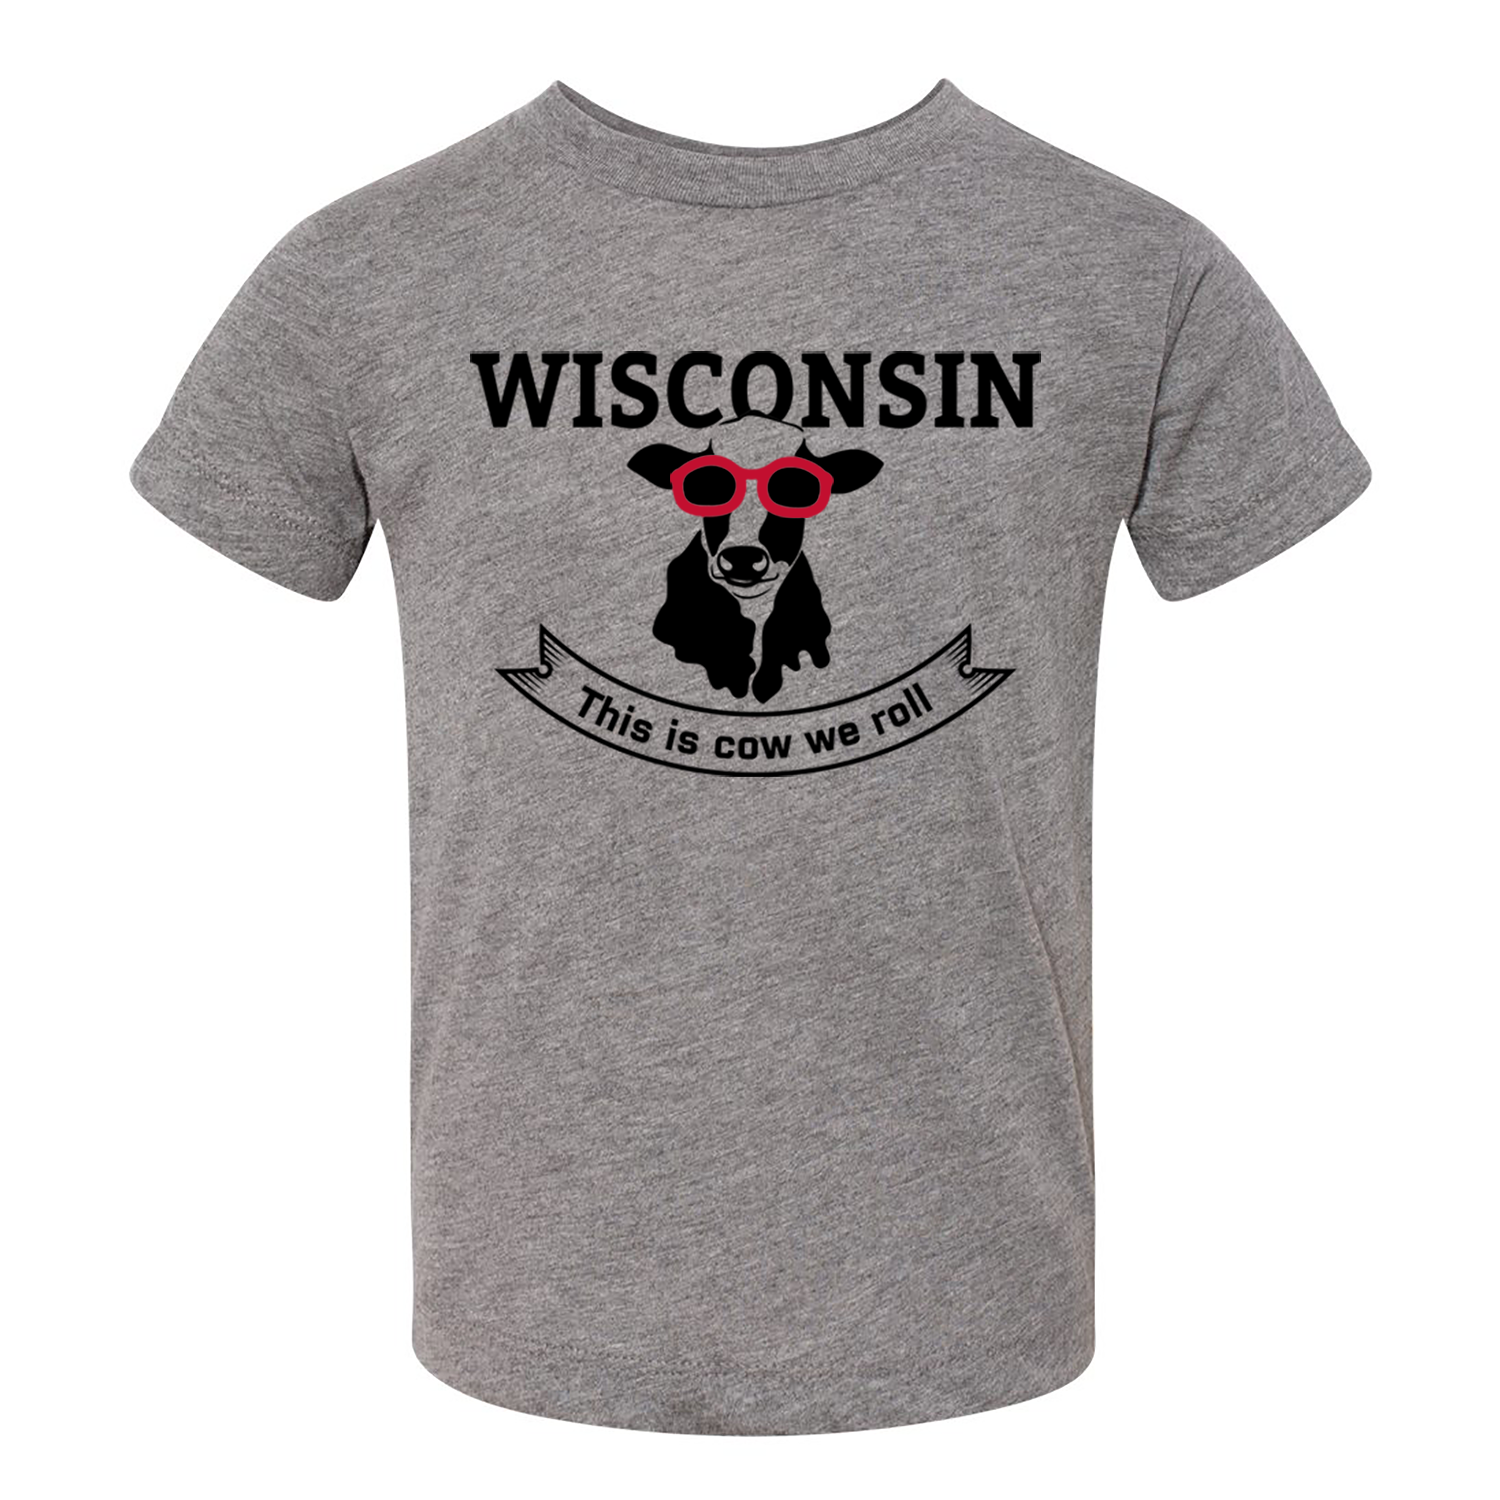 This Is Cow We Roll Wisconsin Infant Triblend Tee